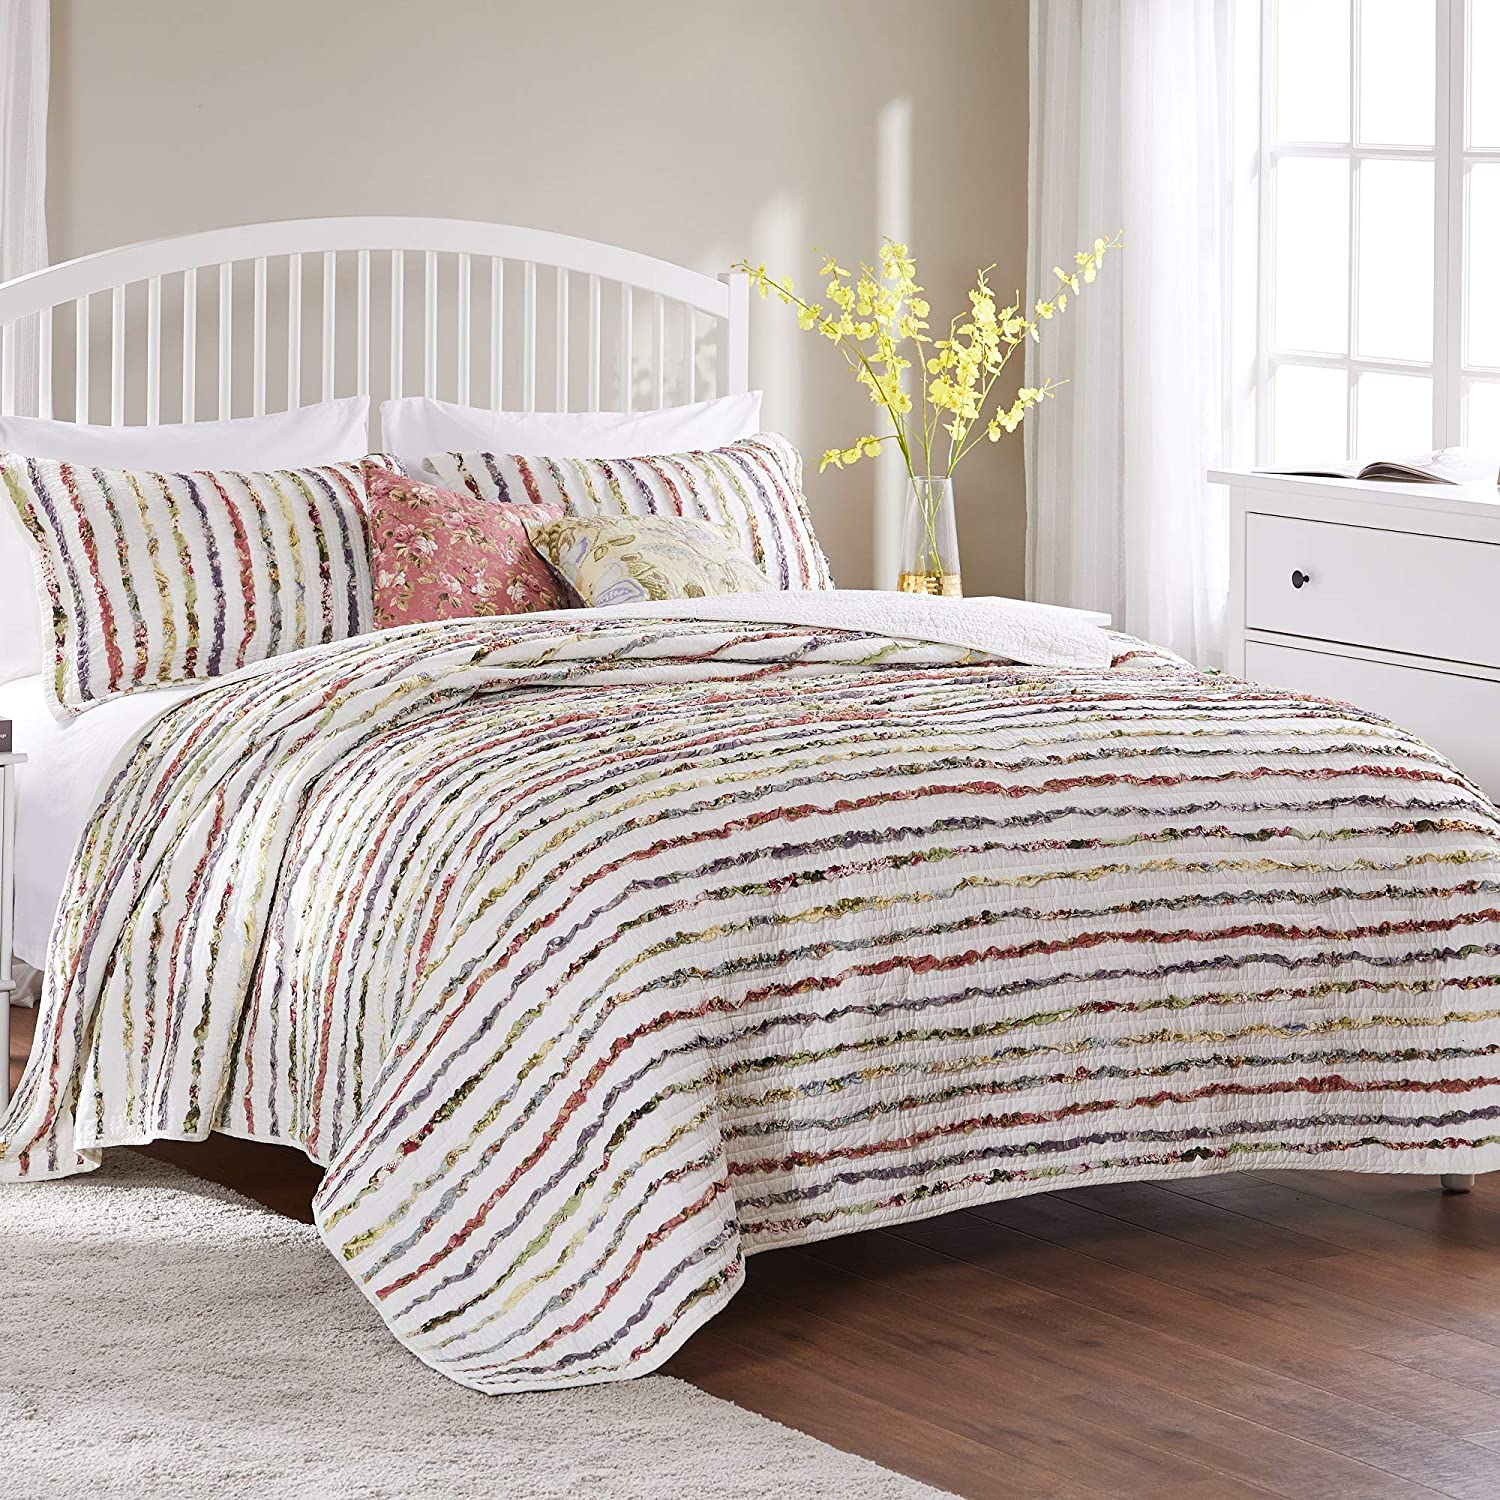 Greenland Home Bella Ruffled Quilt Set, 5-Piece Full/Queen